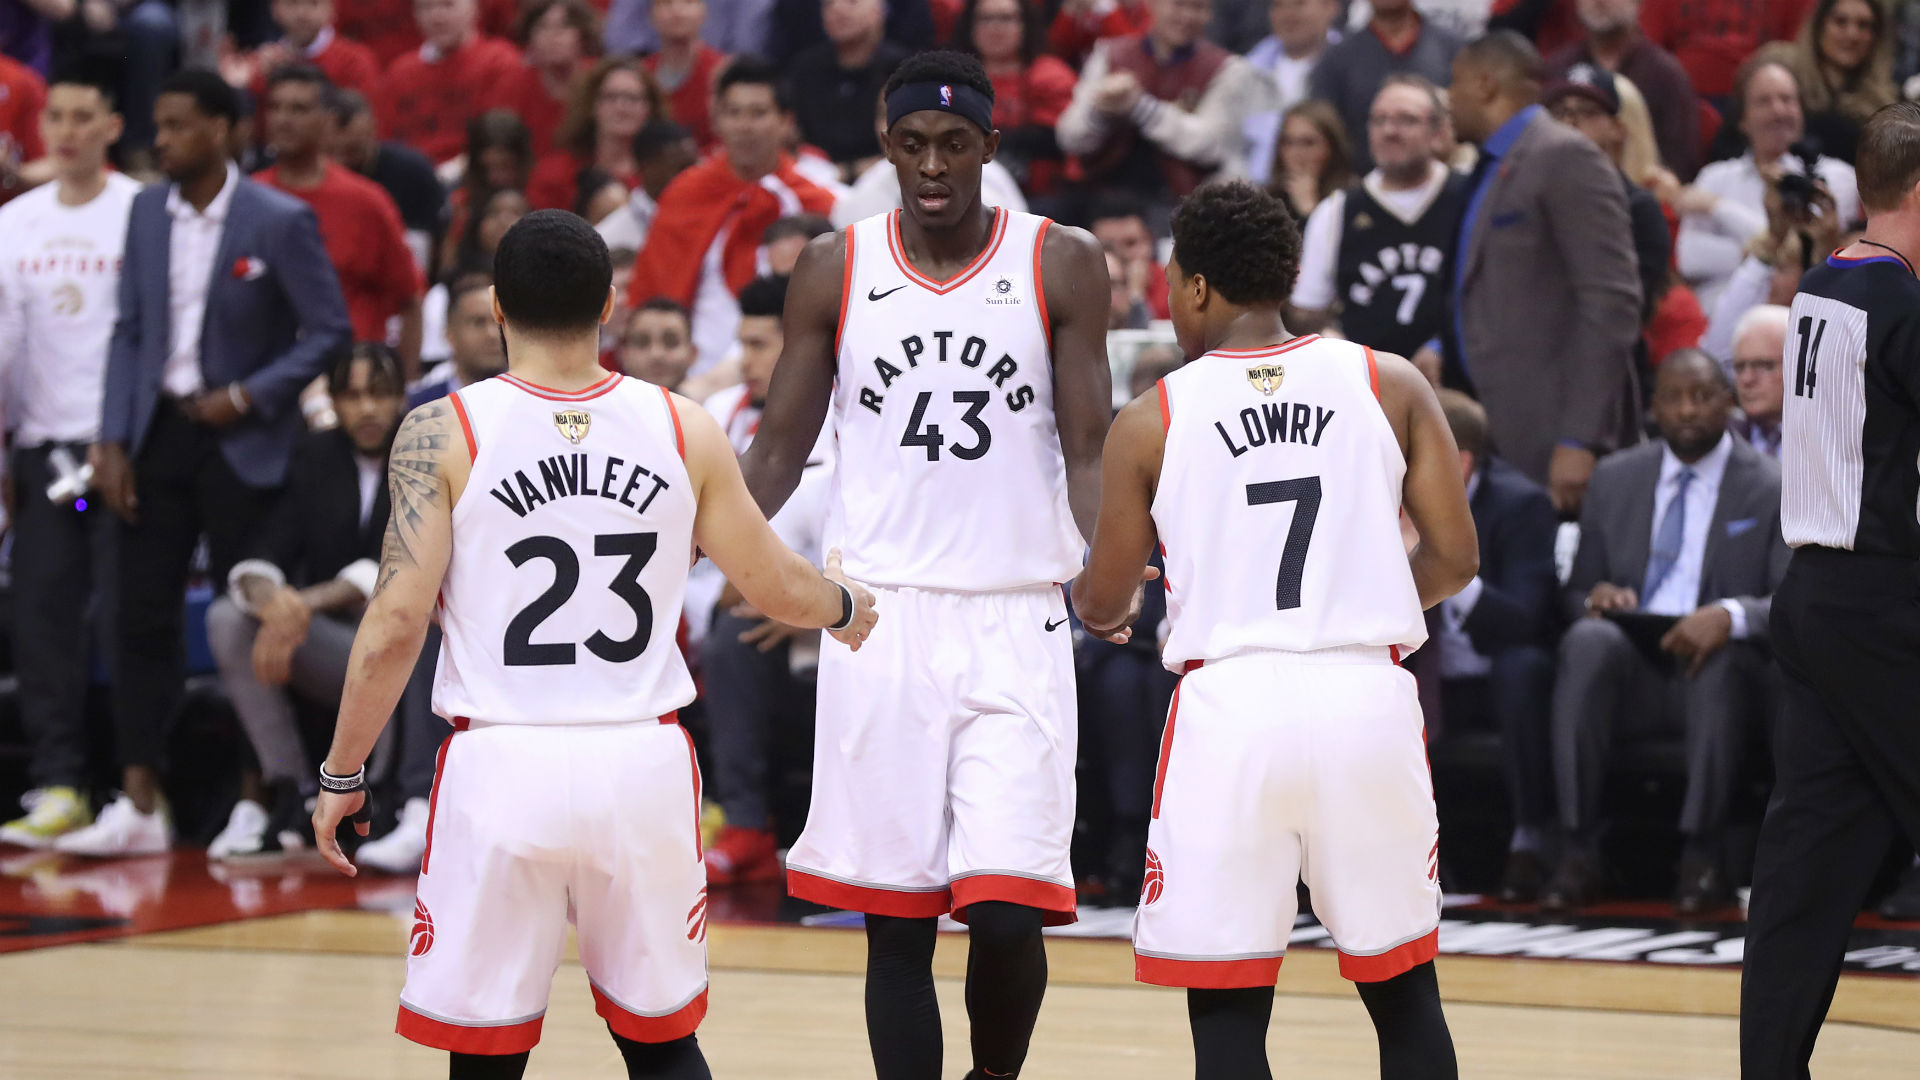 Nba All Star Game 2020 Making The Case For Pascal Siakam